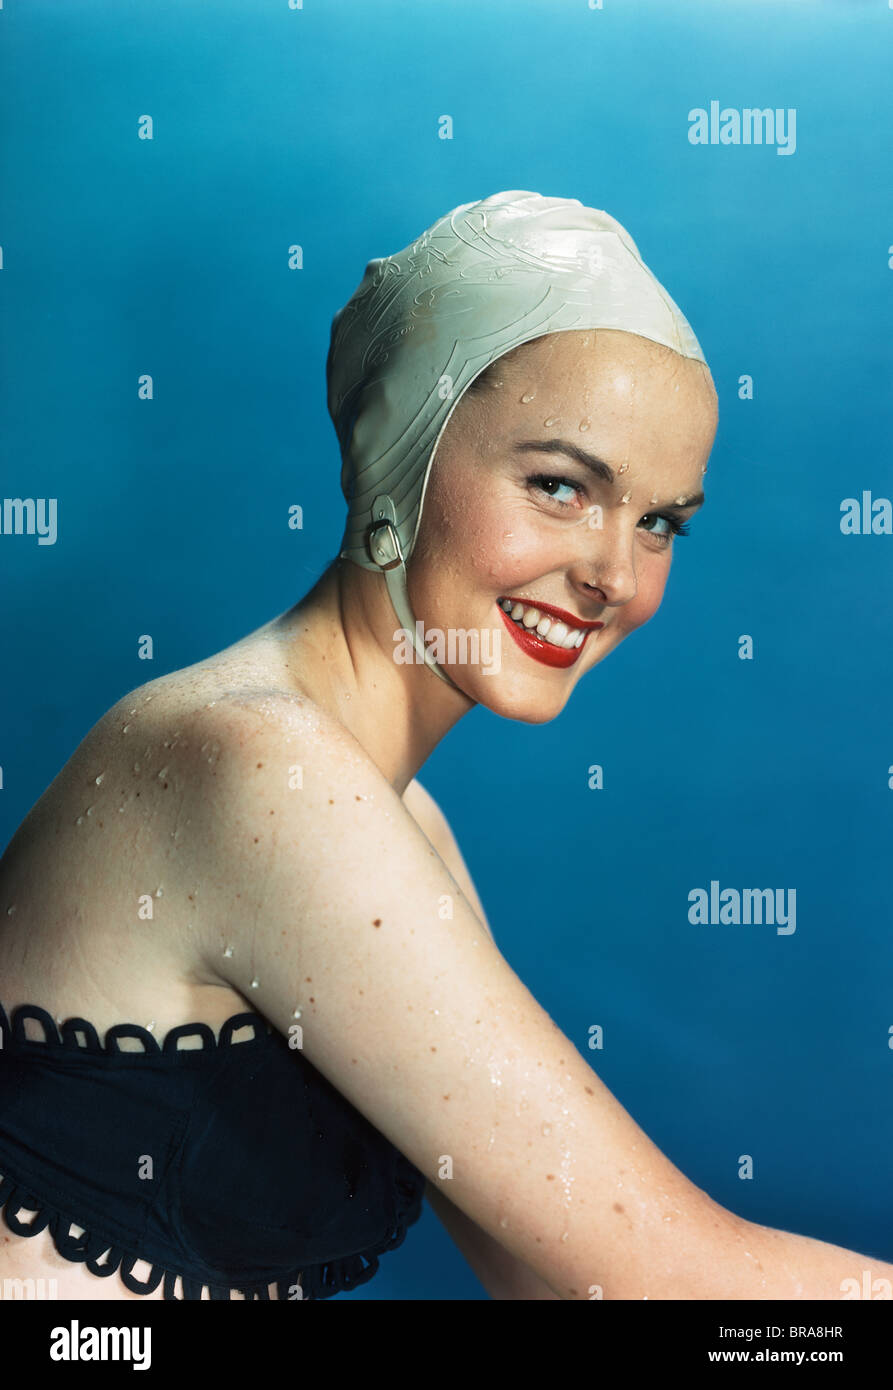 de389735170b6 1950s SMILING WET WOMAN WEARING WHITE SWIM CAP AND BLACK BATHING SUIT -  Stock Image